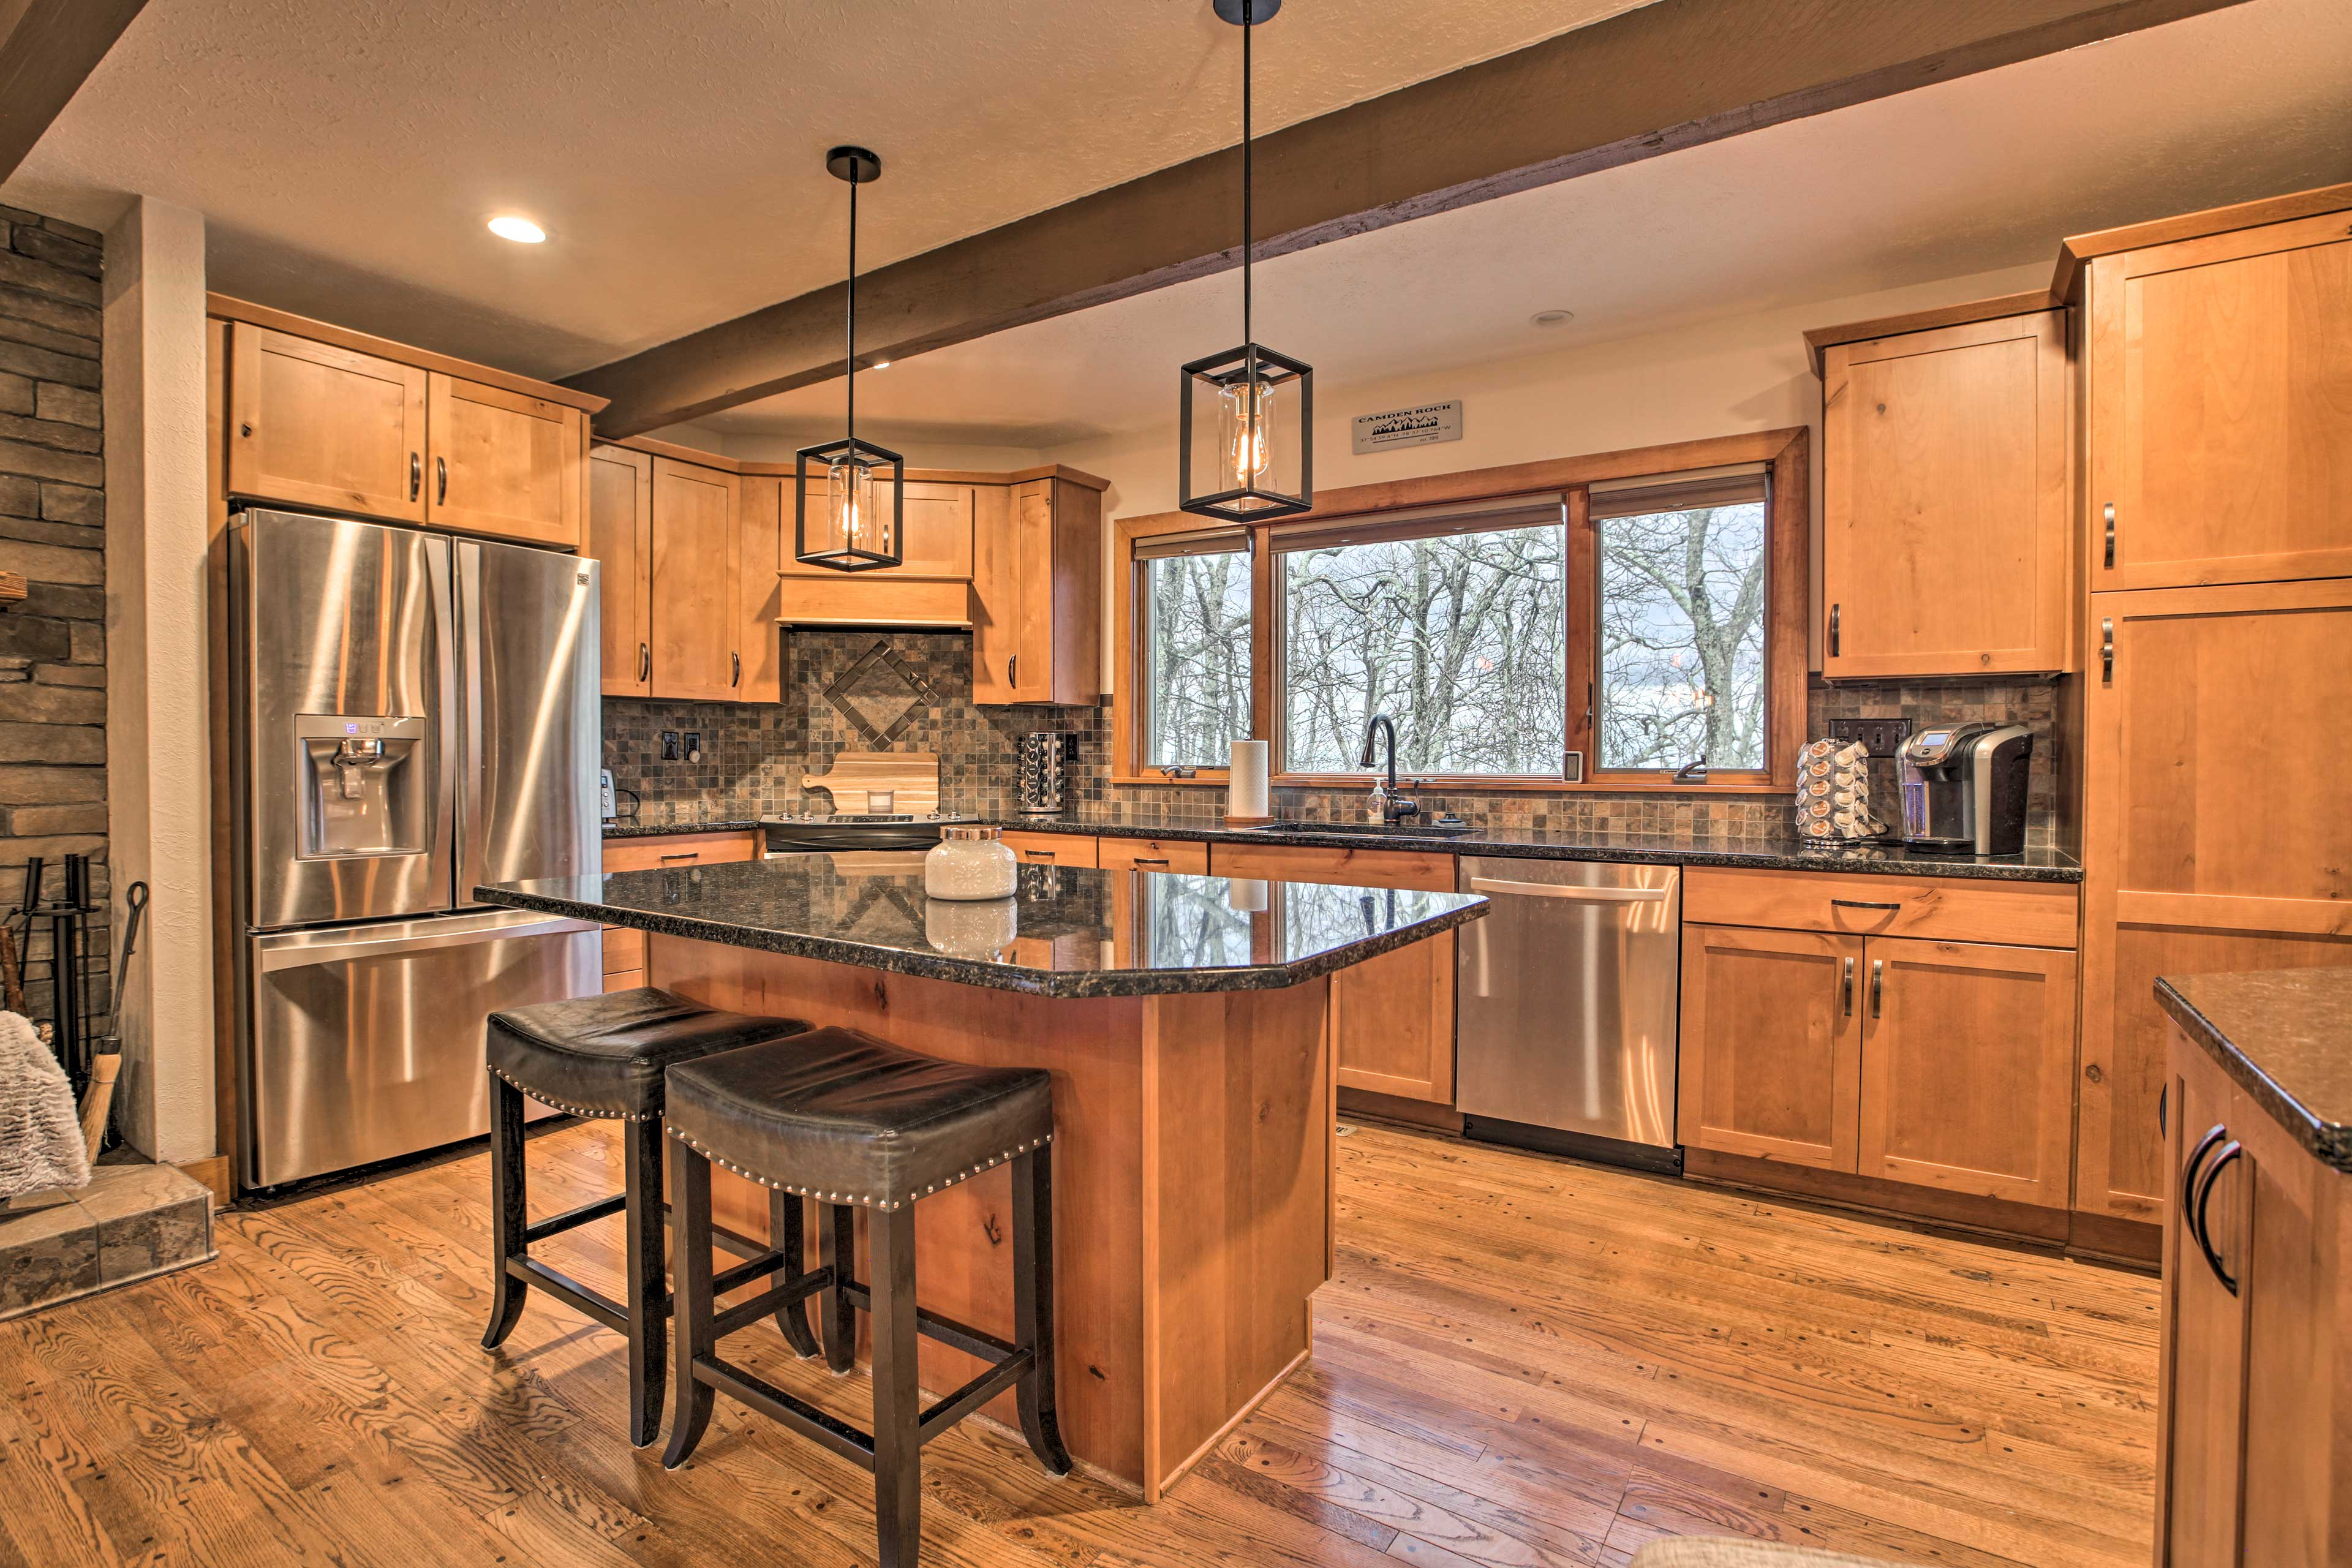 The chefs of the group will love the stainless steel appliances.